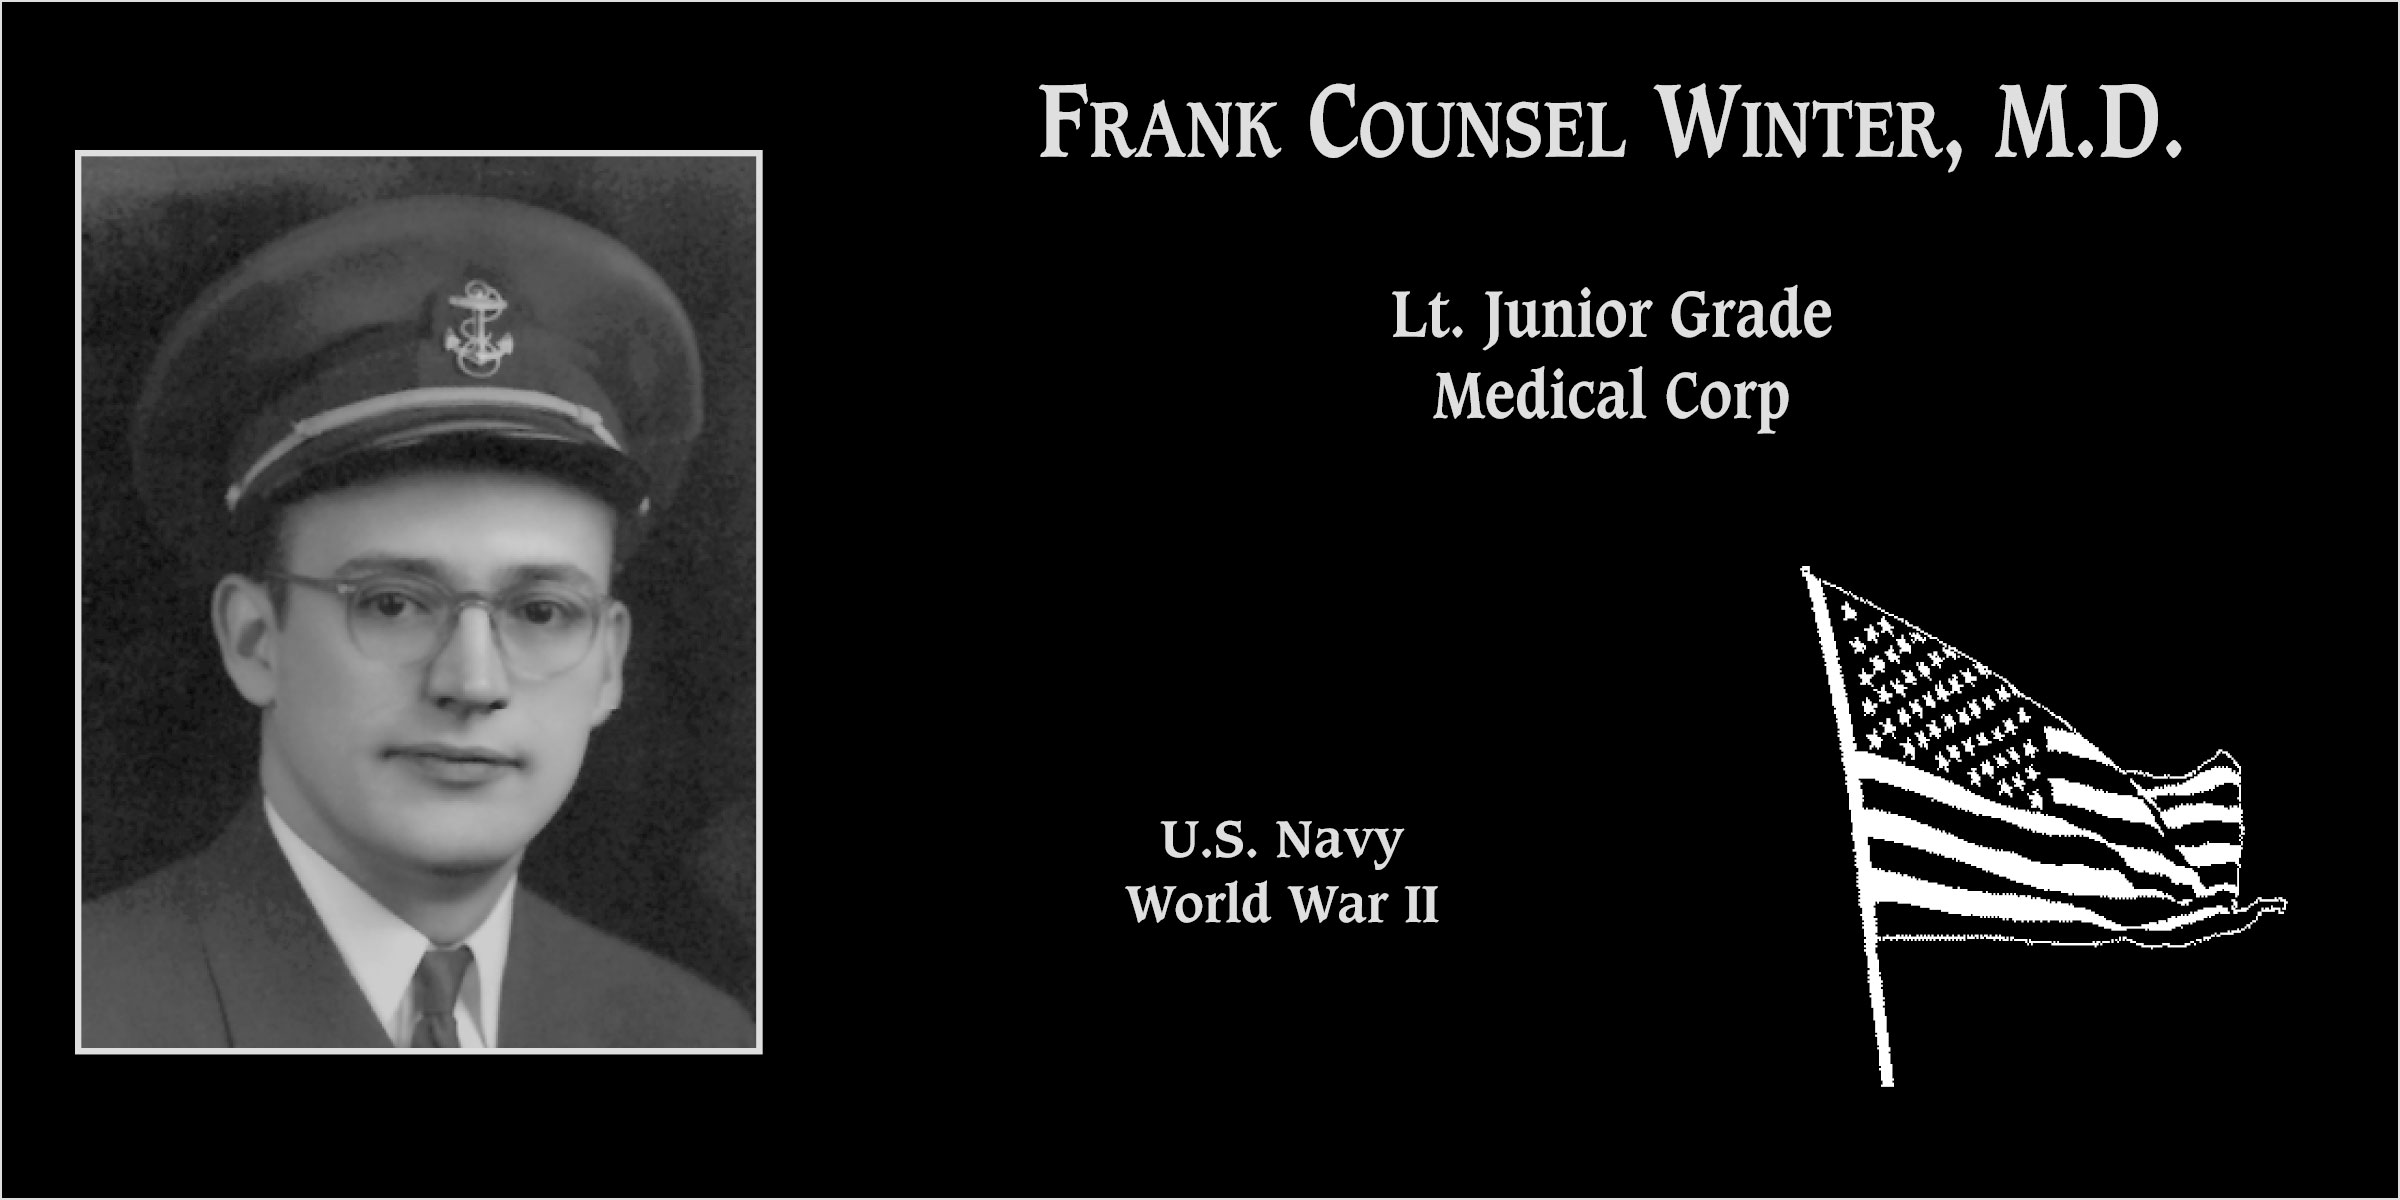 Frank Counsel Winter, M.D.